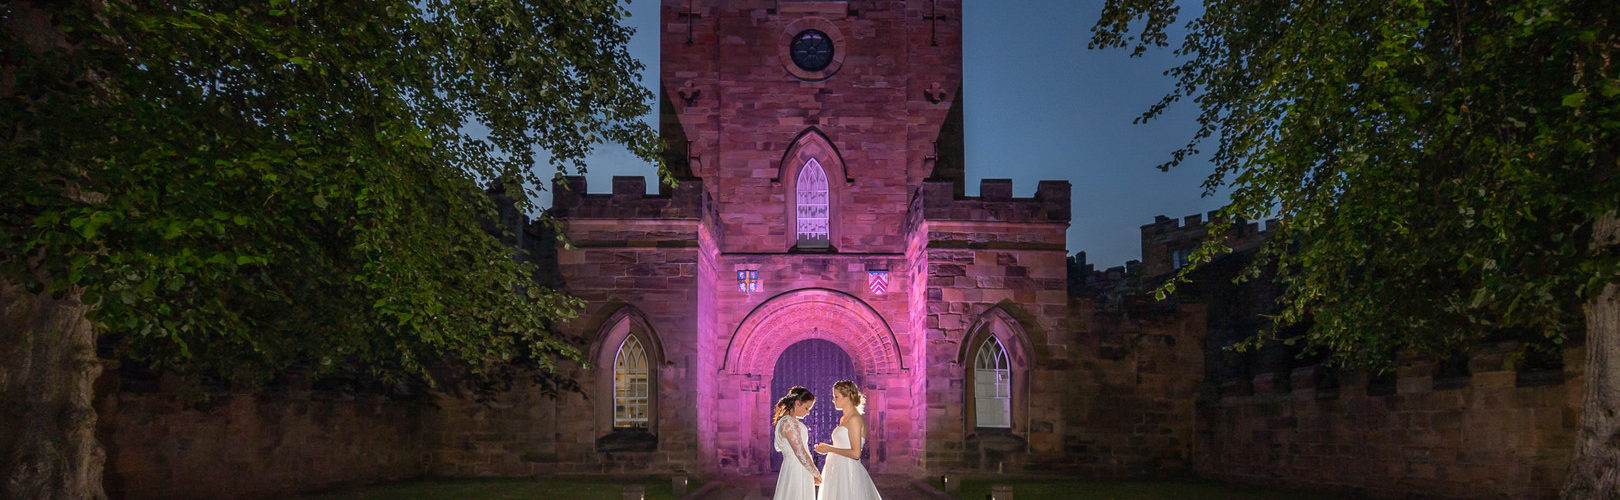 The Ultimate Castle Wedding